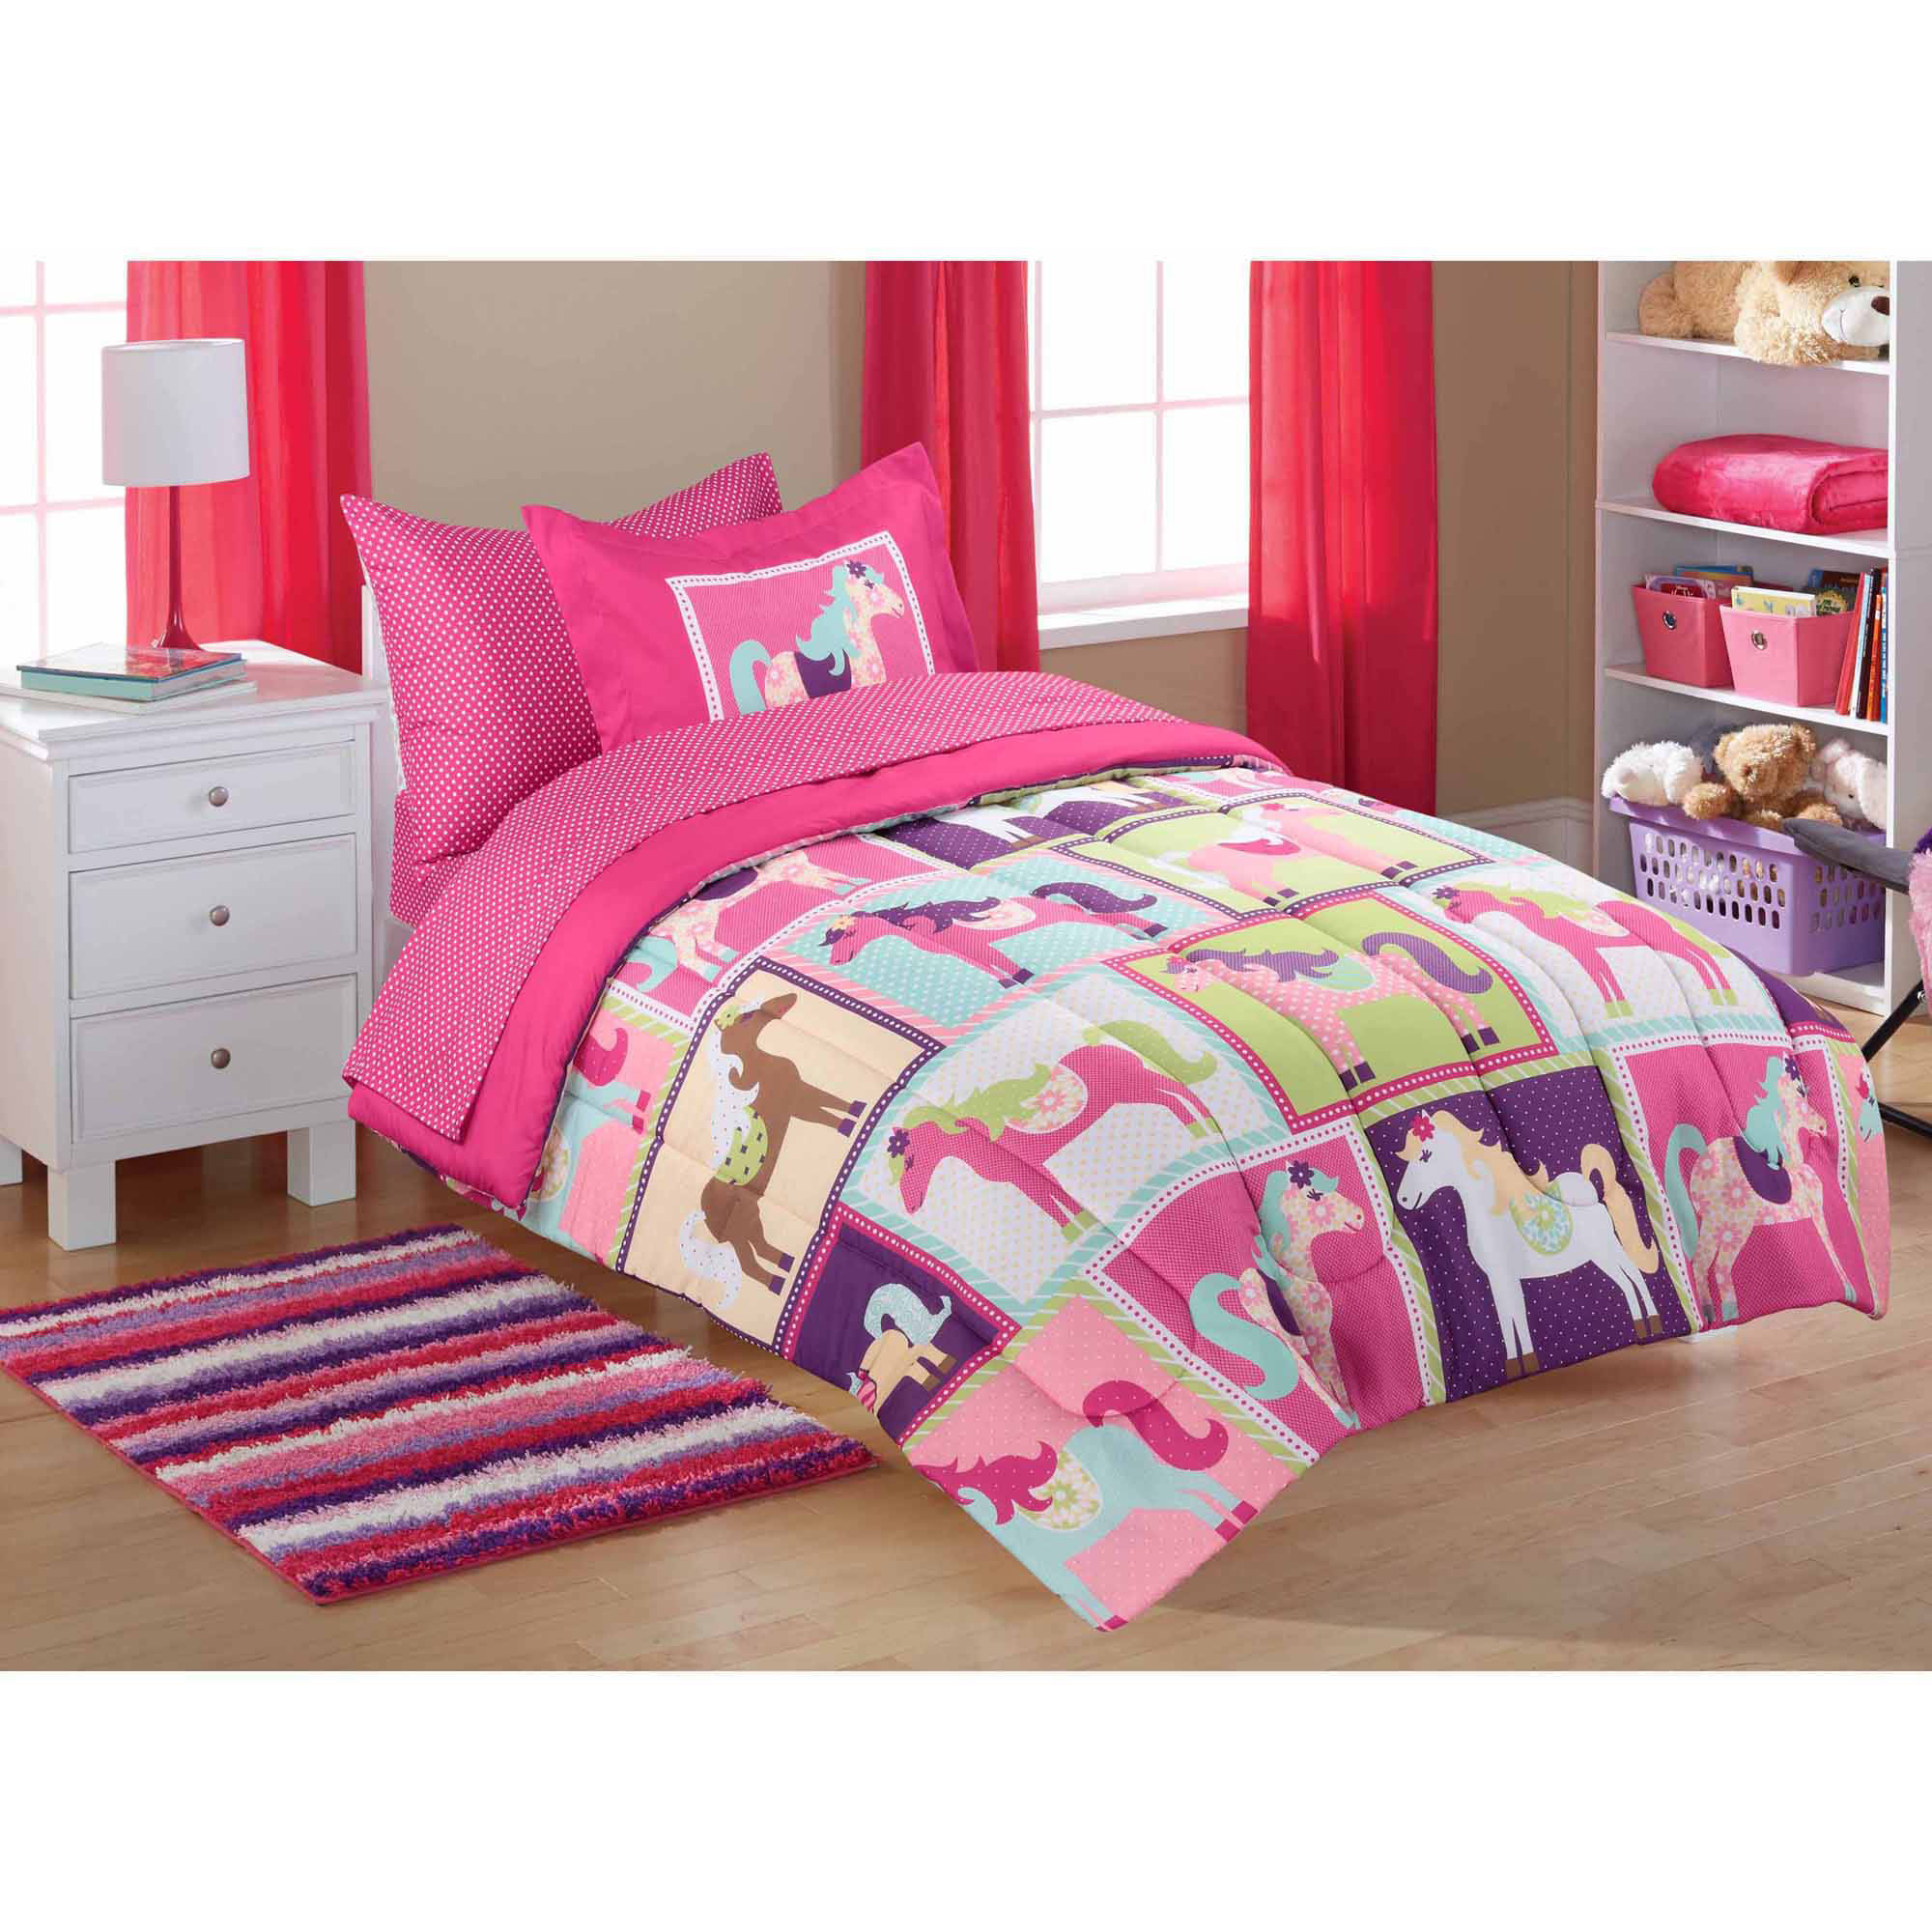 mainstays kids coordinated bed in a bag pink horsey walmartcom - Horse Bedding